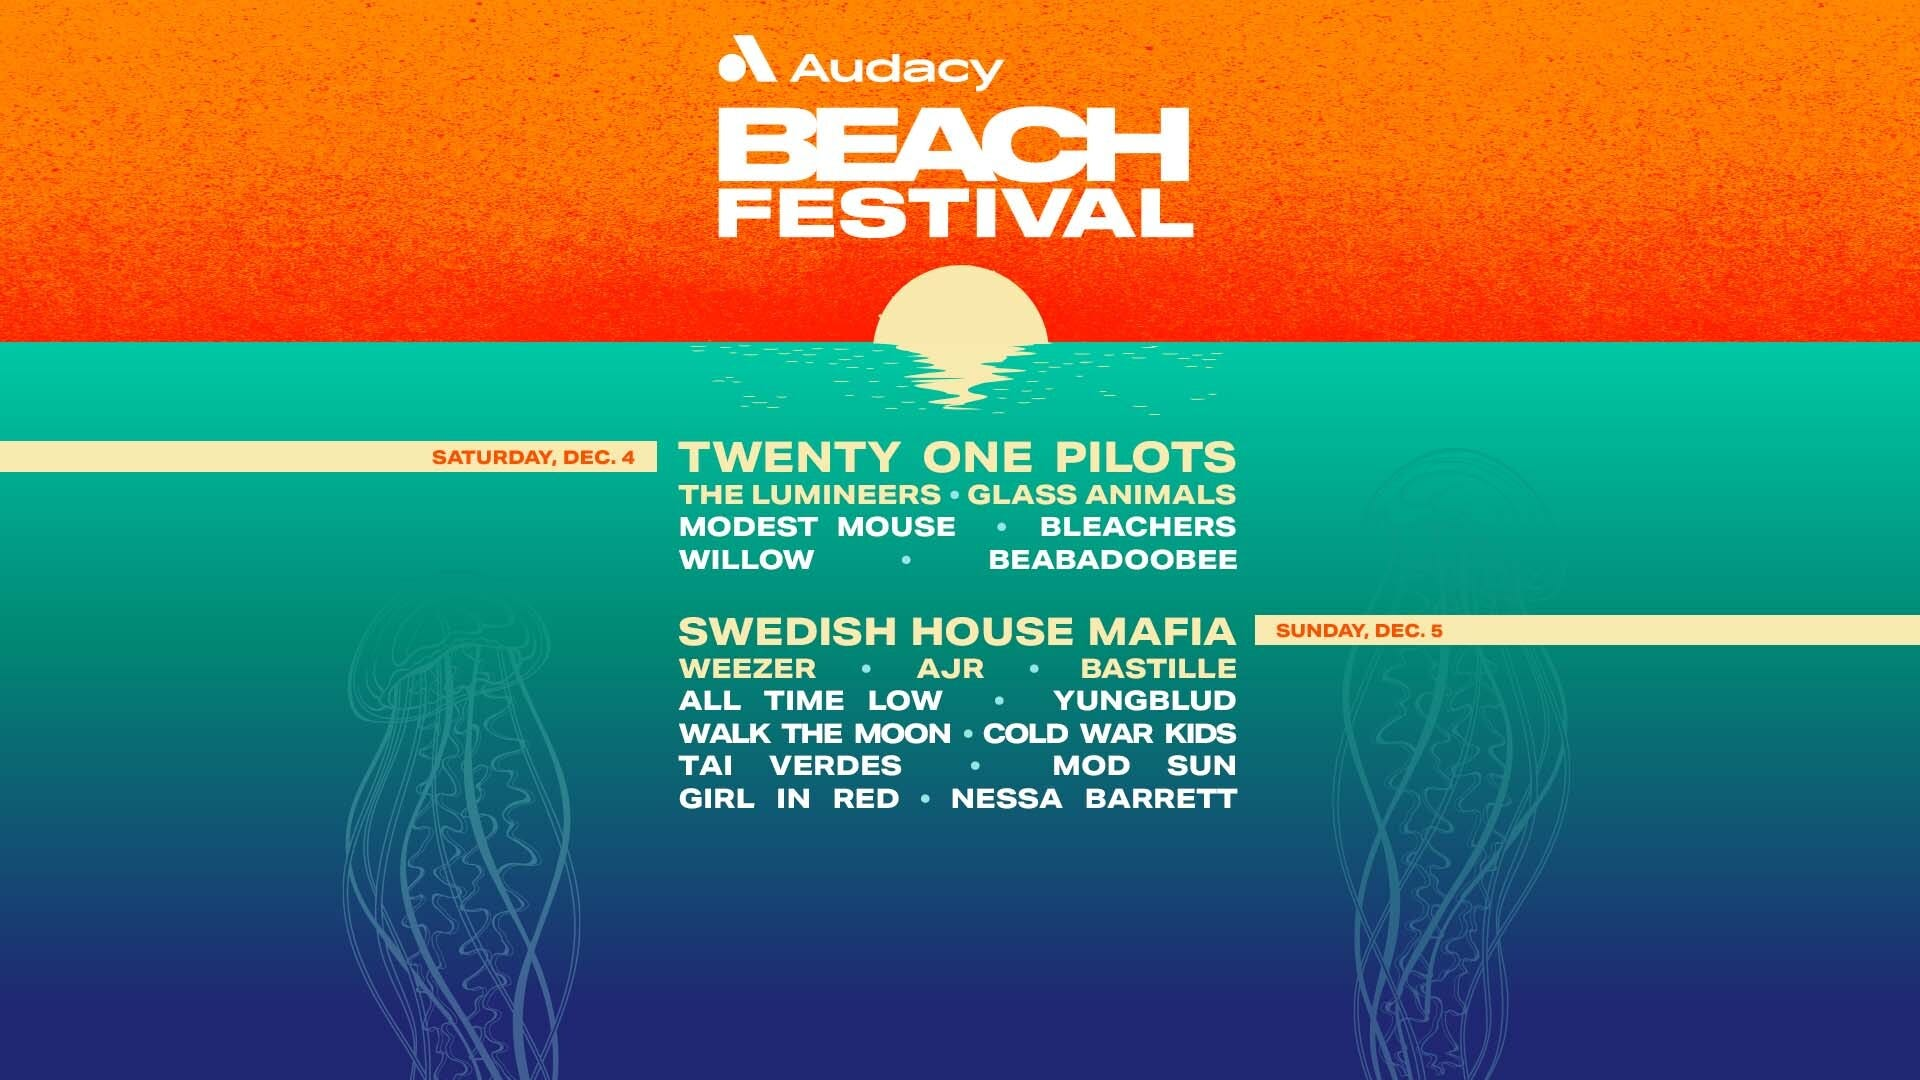 Audacy Beach Festival is coming to Fort Lauderdale Beach this December